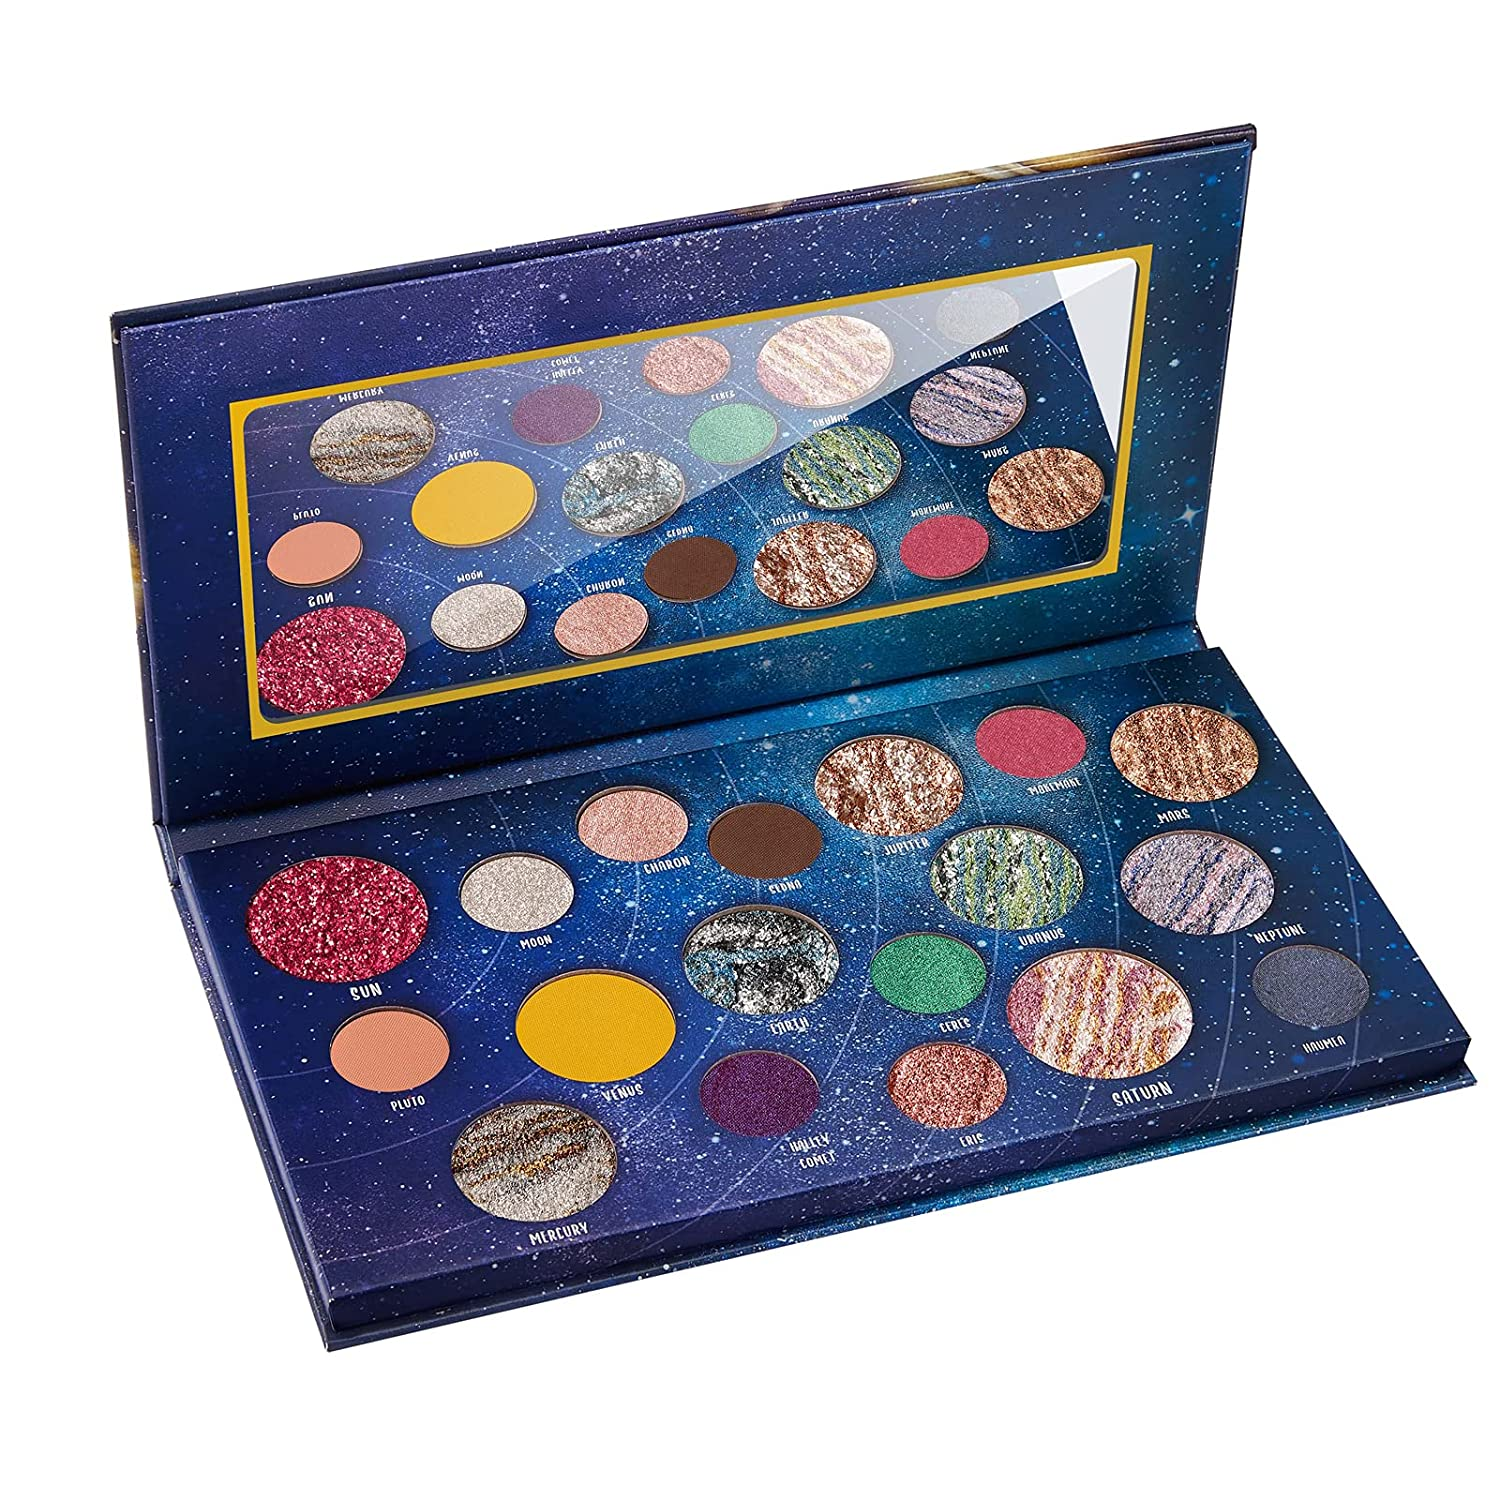 Fresno Mall DiTO 18 Color Galaxy Outstanding Eyeshadow Highly Palette Pigmented Makeup